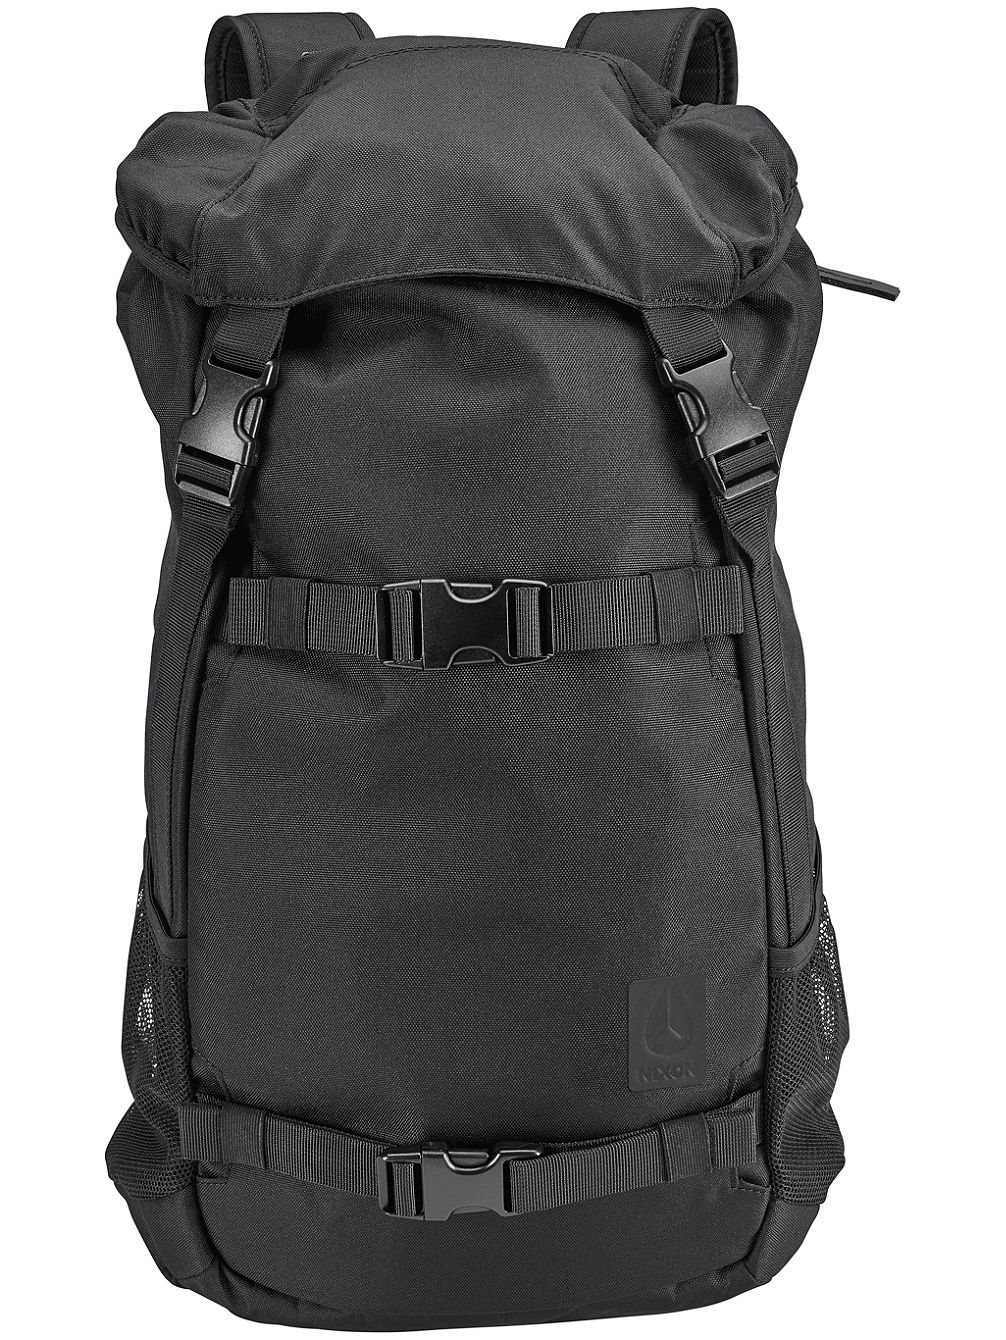 Landlock Se II Backpack